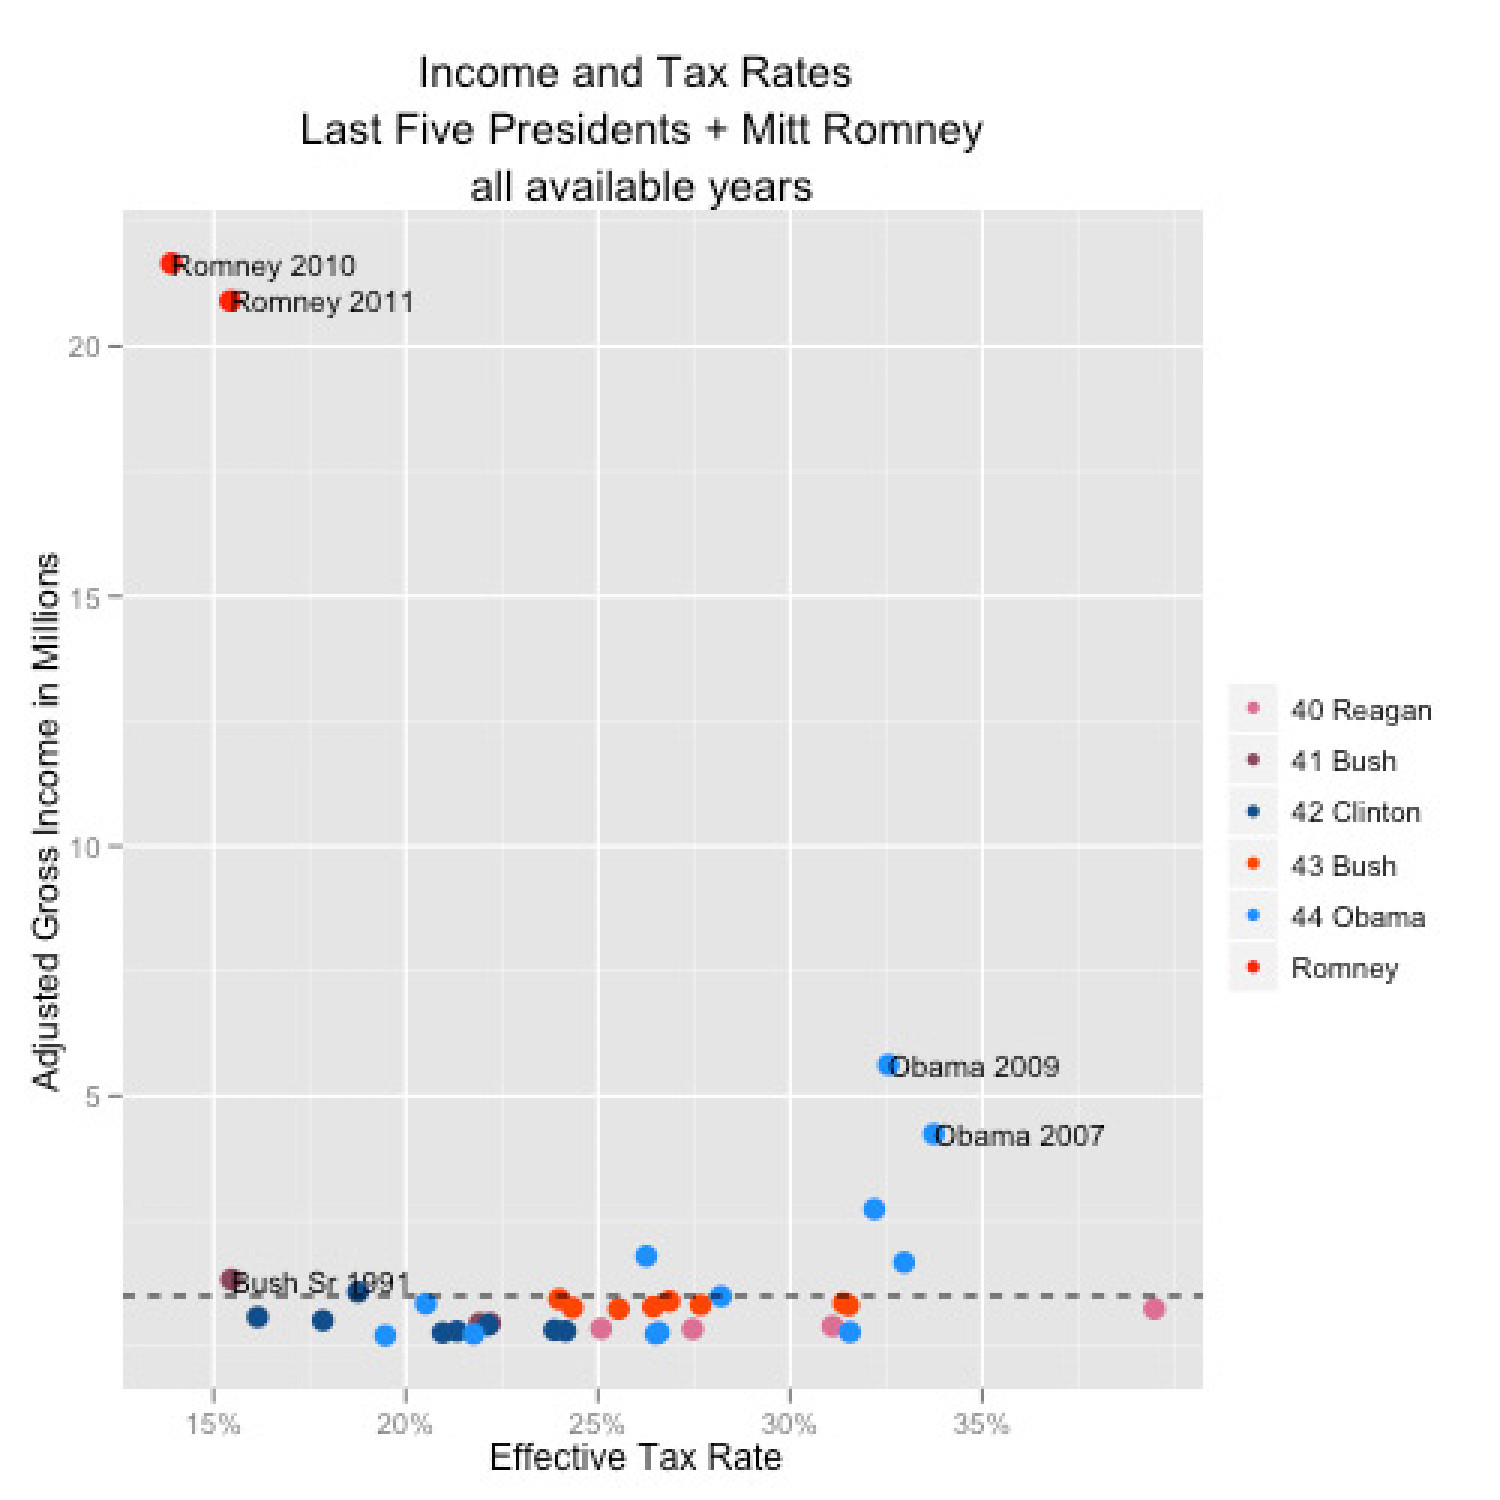 Romney Obama Income and Tax Rates Infographic